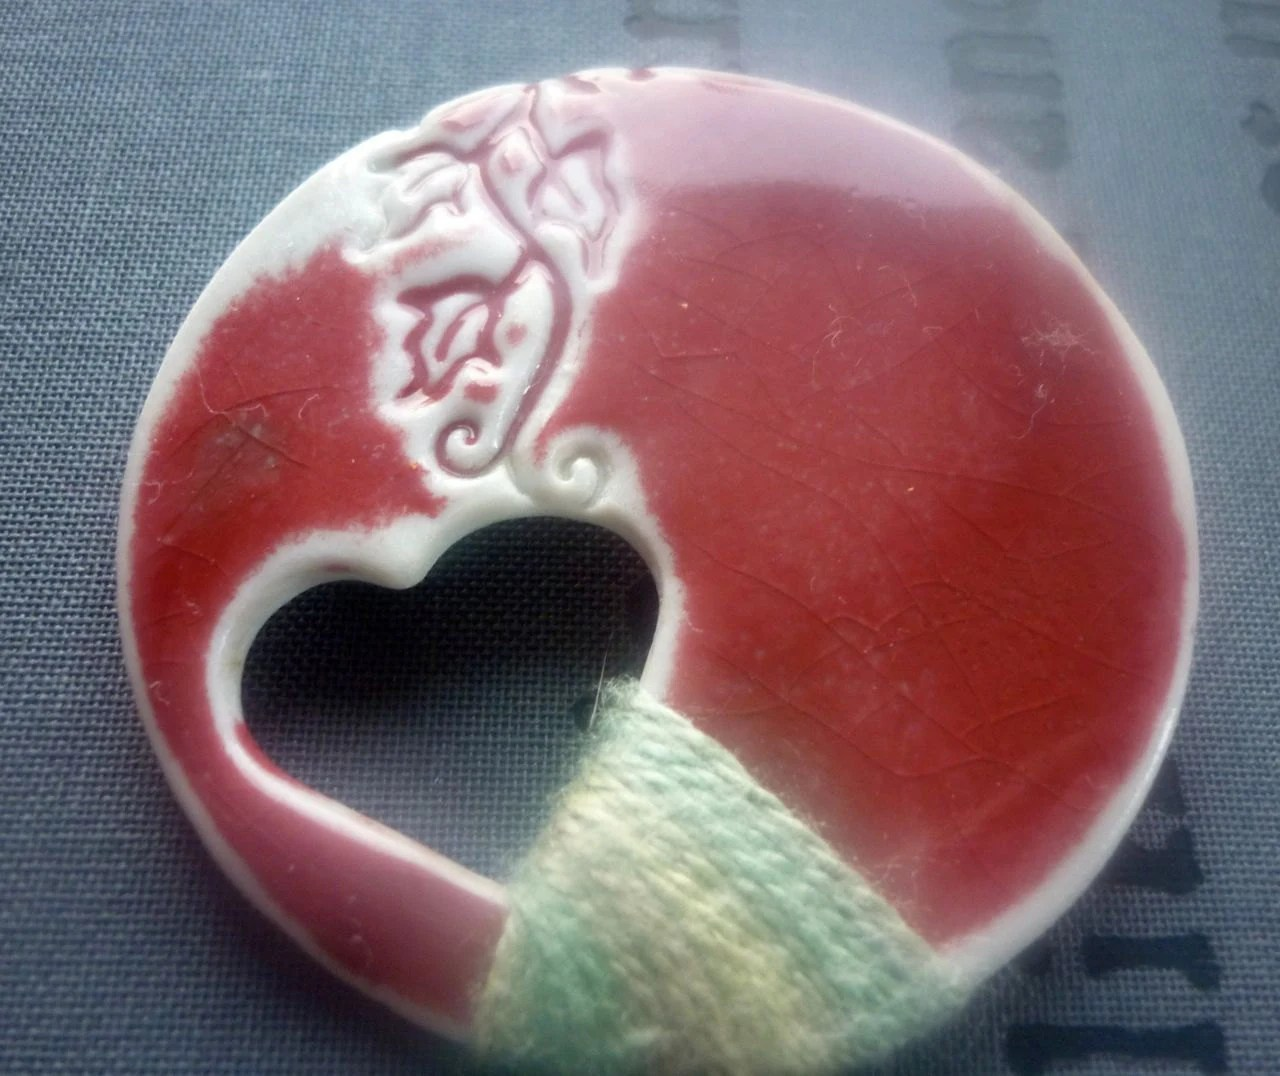 Ceramic Brooch: Porcelain impressed with ivy leaves, heart cut out in Peach Bloom Red glaze, with green silk thread.